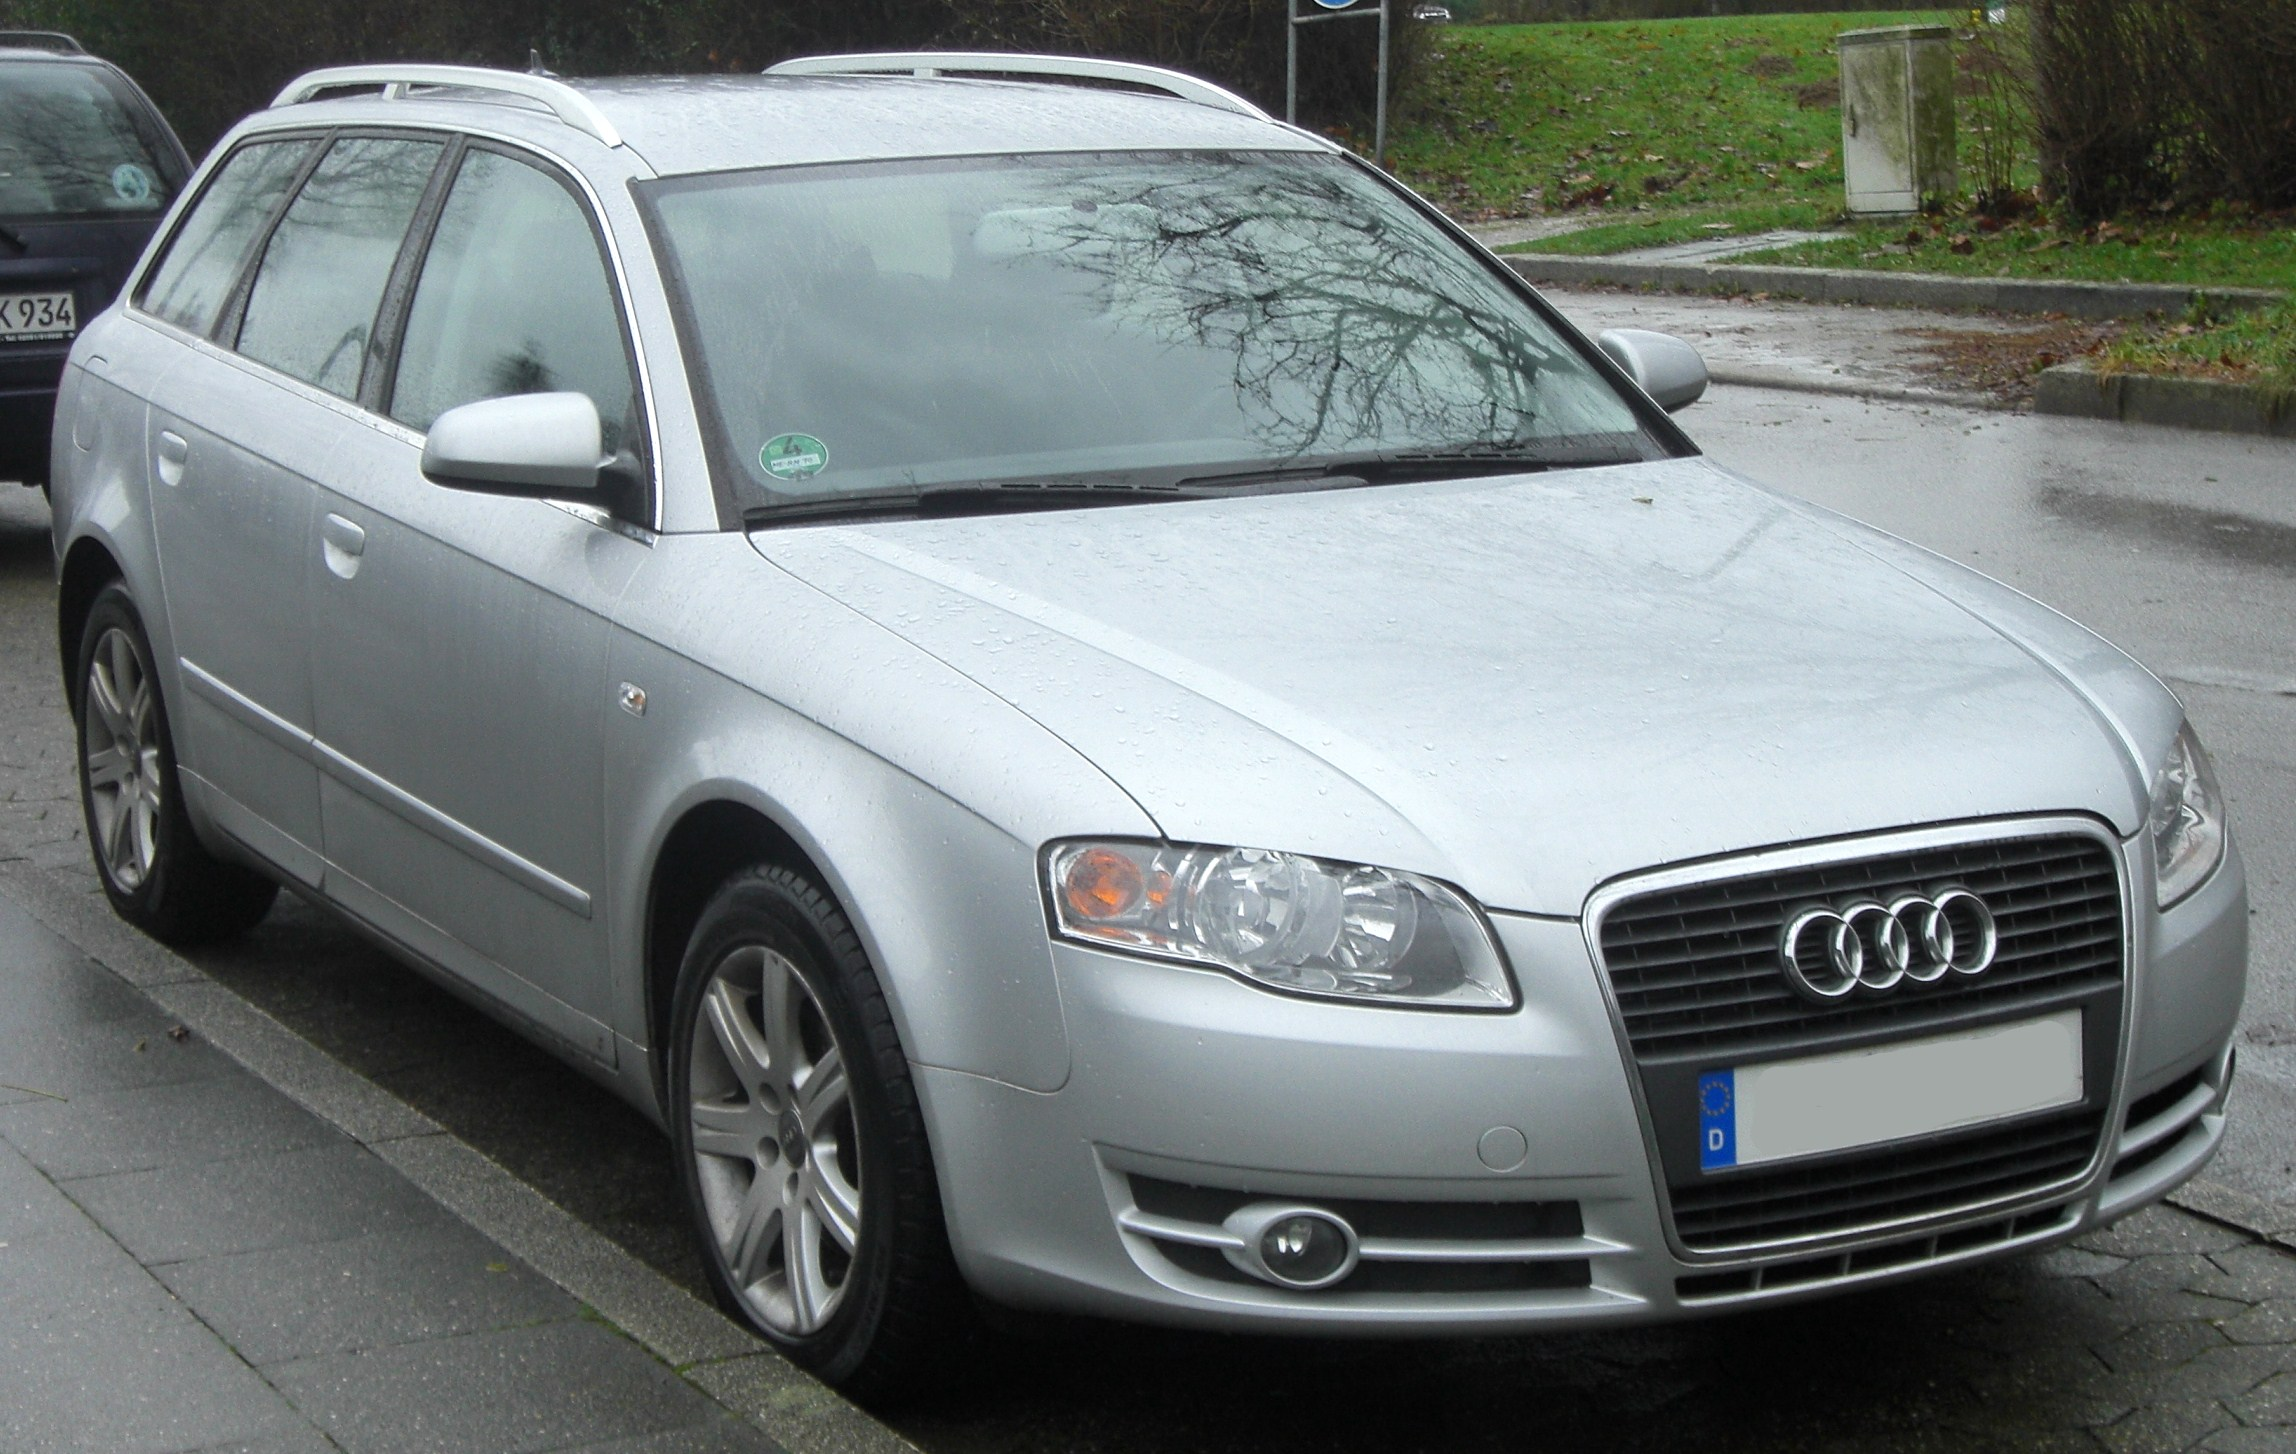 file audi a4 b7 avant facelift 2004 2008 2 0 tdi front mj jpg wikimedia commons. Black Bedroom Furniture Sets. Home Design Ideas